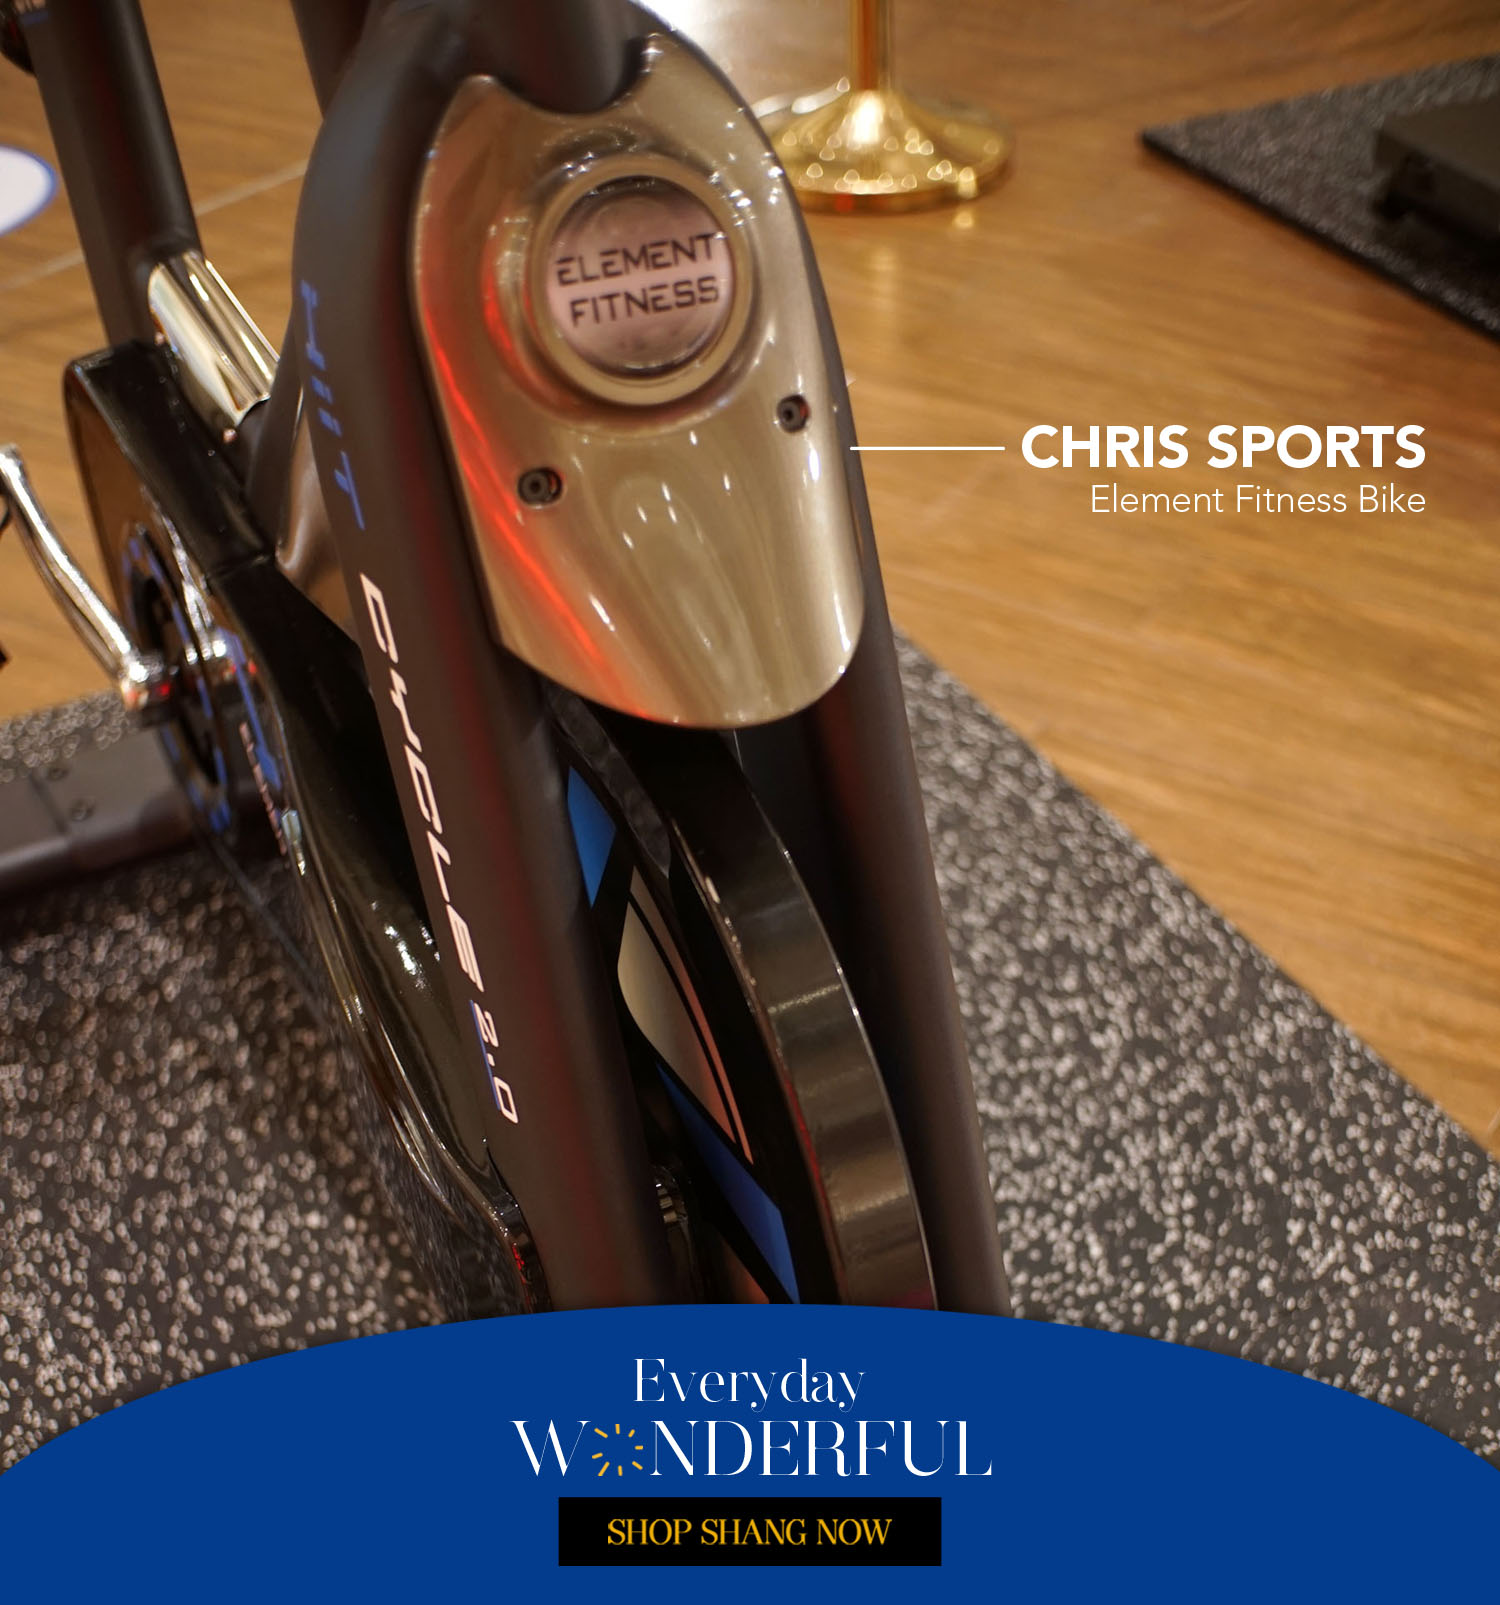 Element Fitness Bike from Chris Sports